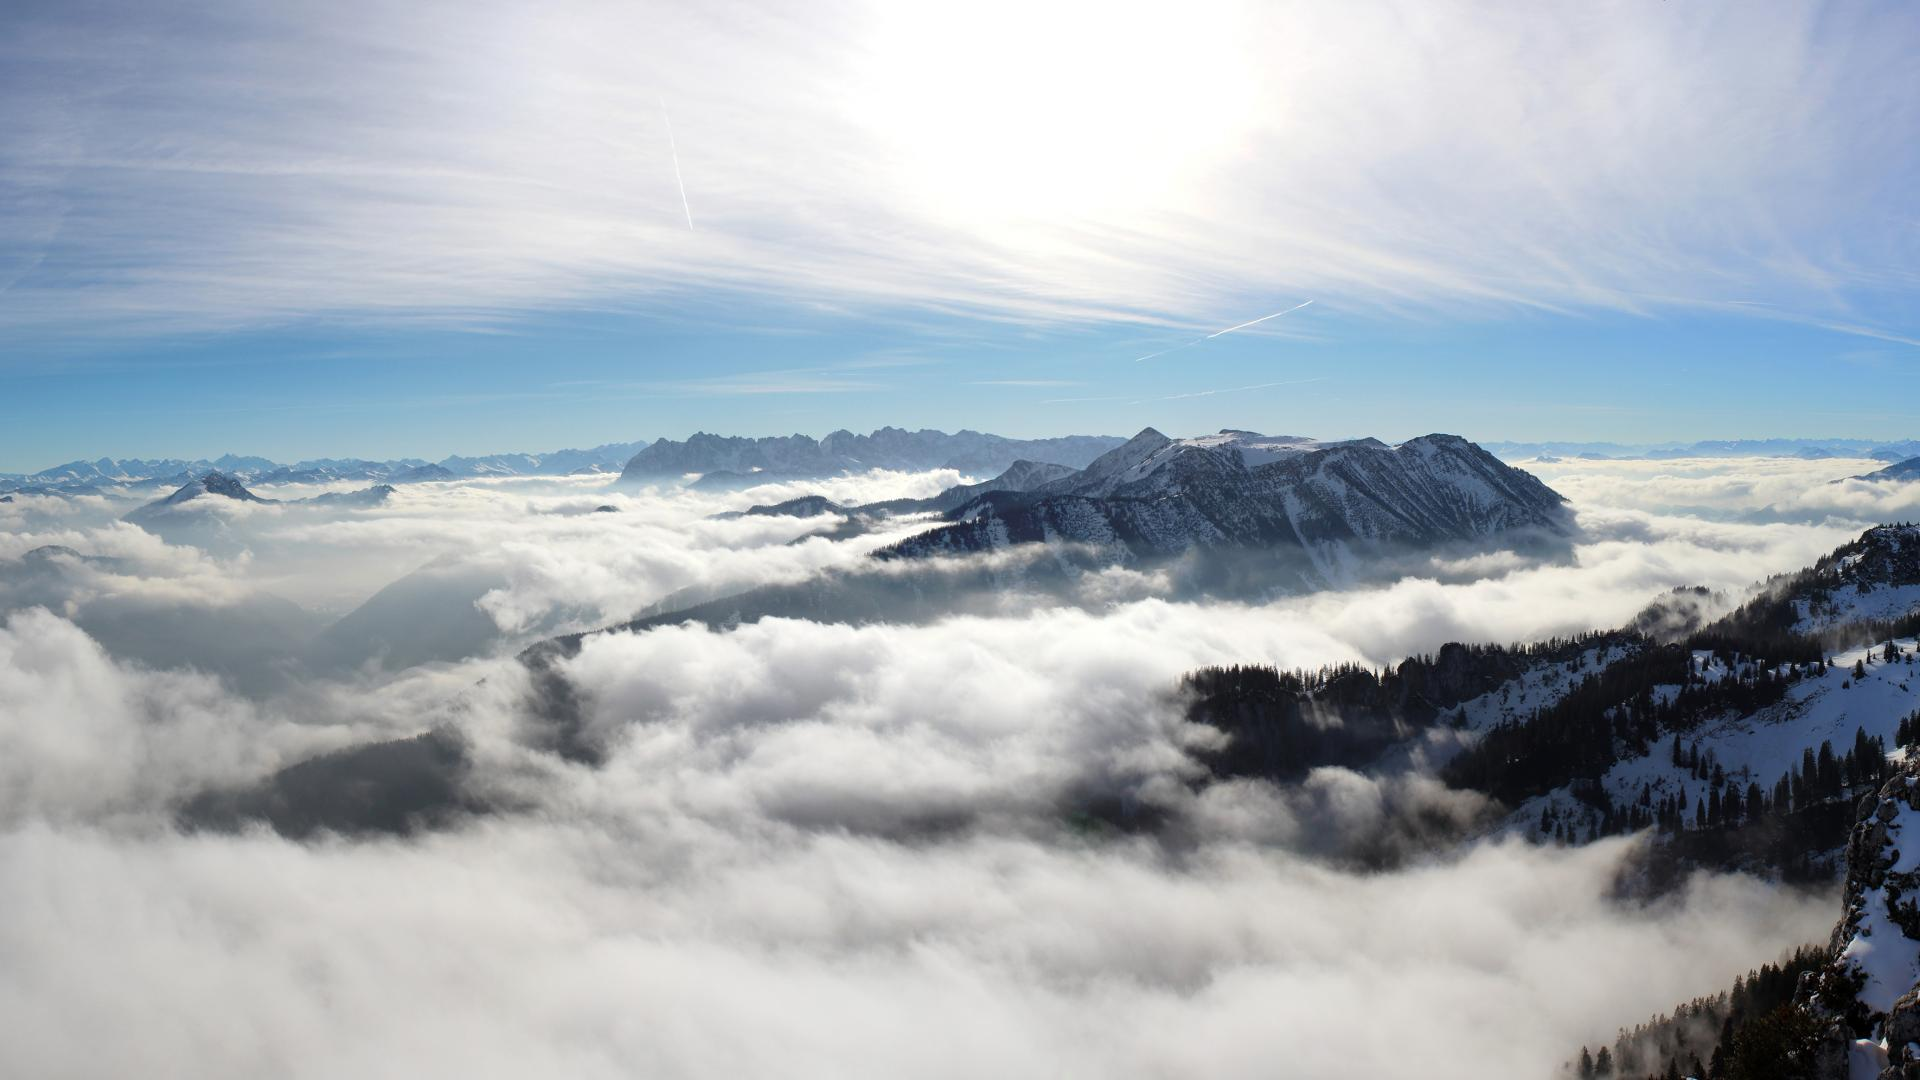 View from above the clouds